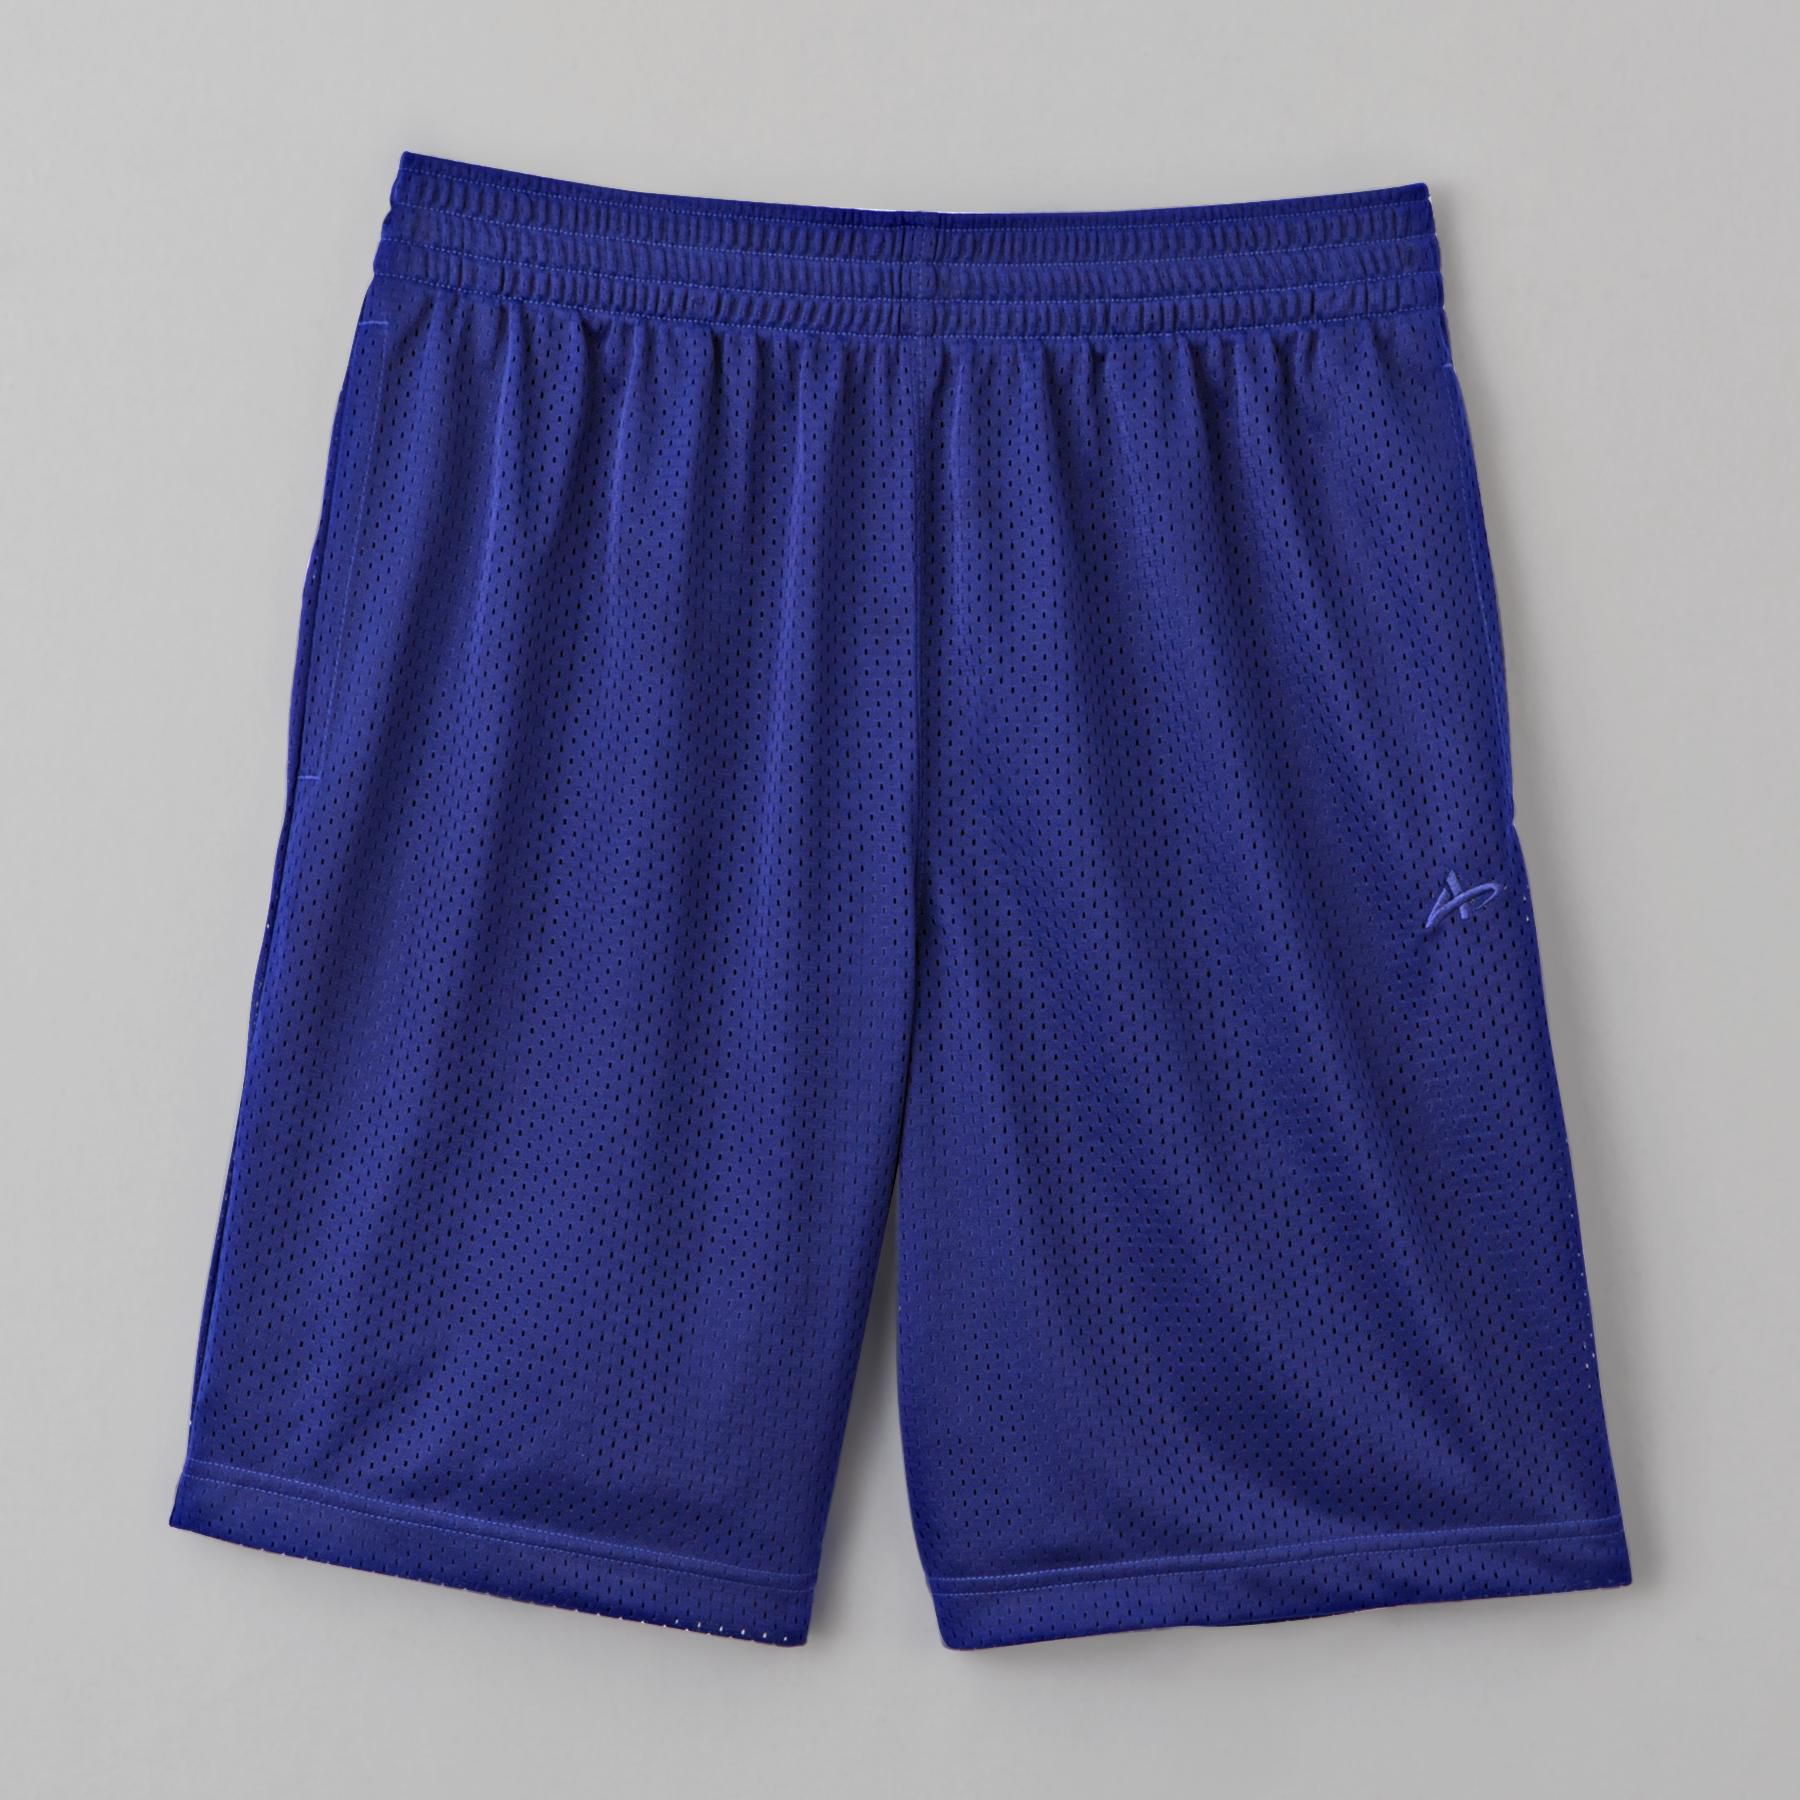 Athletech Men's Mesh Athletic Shorts at Kmart.com